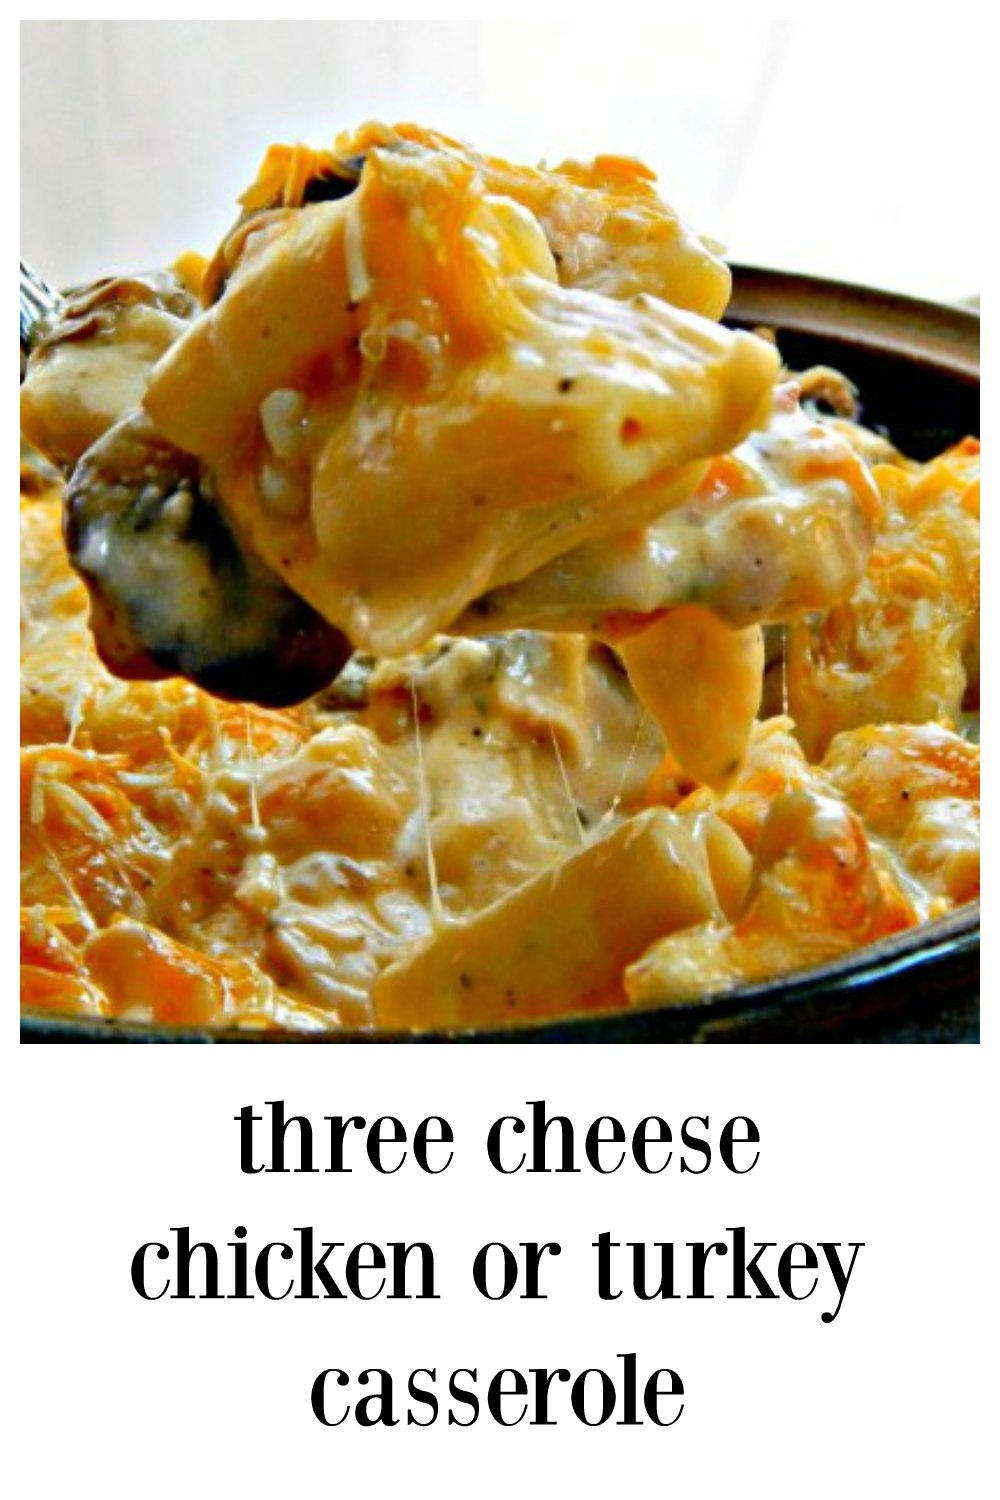 Three Cheese Chicken Casserole is simple, easy and just as good with leftover turkey. This is just pure comfort food, hearty & satisfying! #ChickenCasserole #TurkeyCasserole #LeftoverTurkey #LeftoverChicken #CheesyCasserole #CheesyChickenTurkeyCasserole